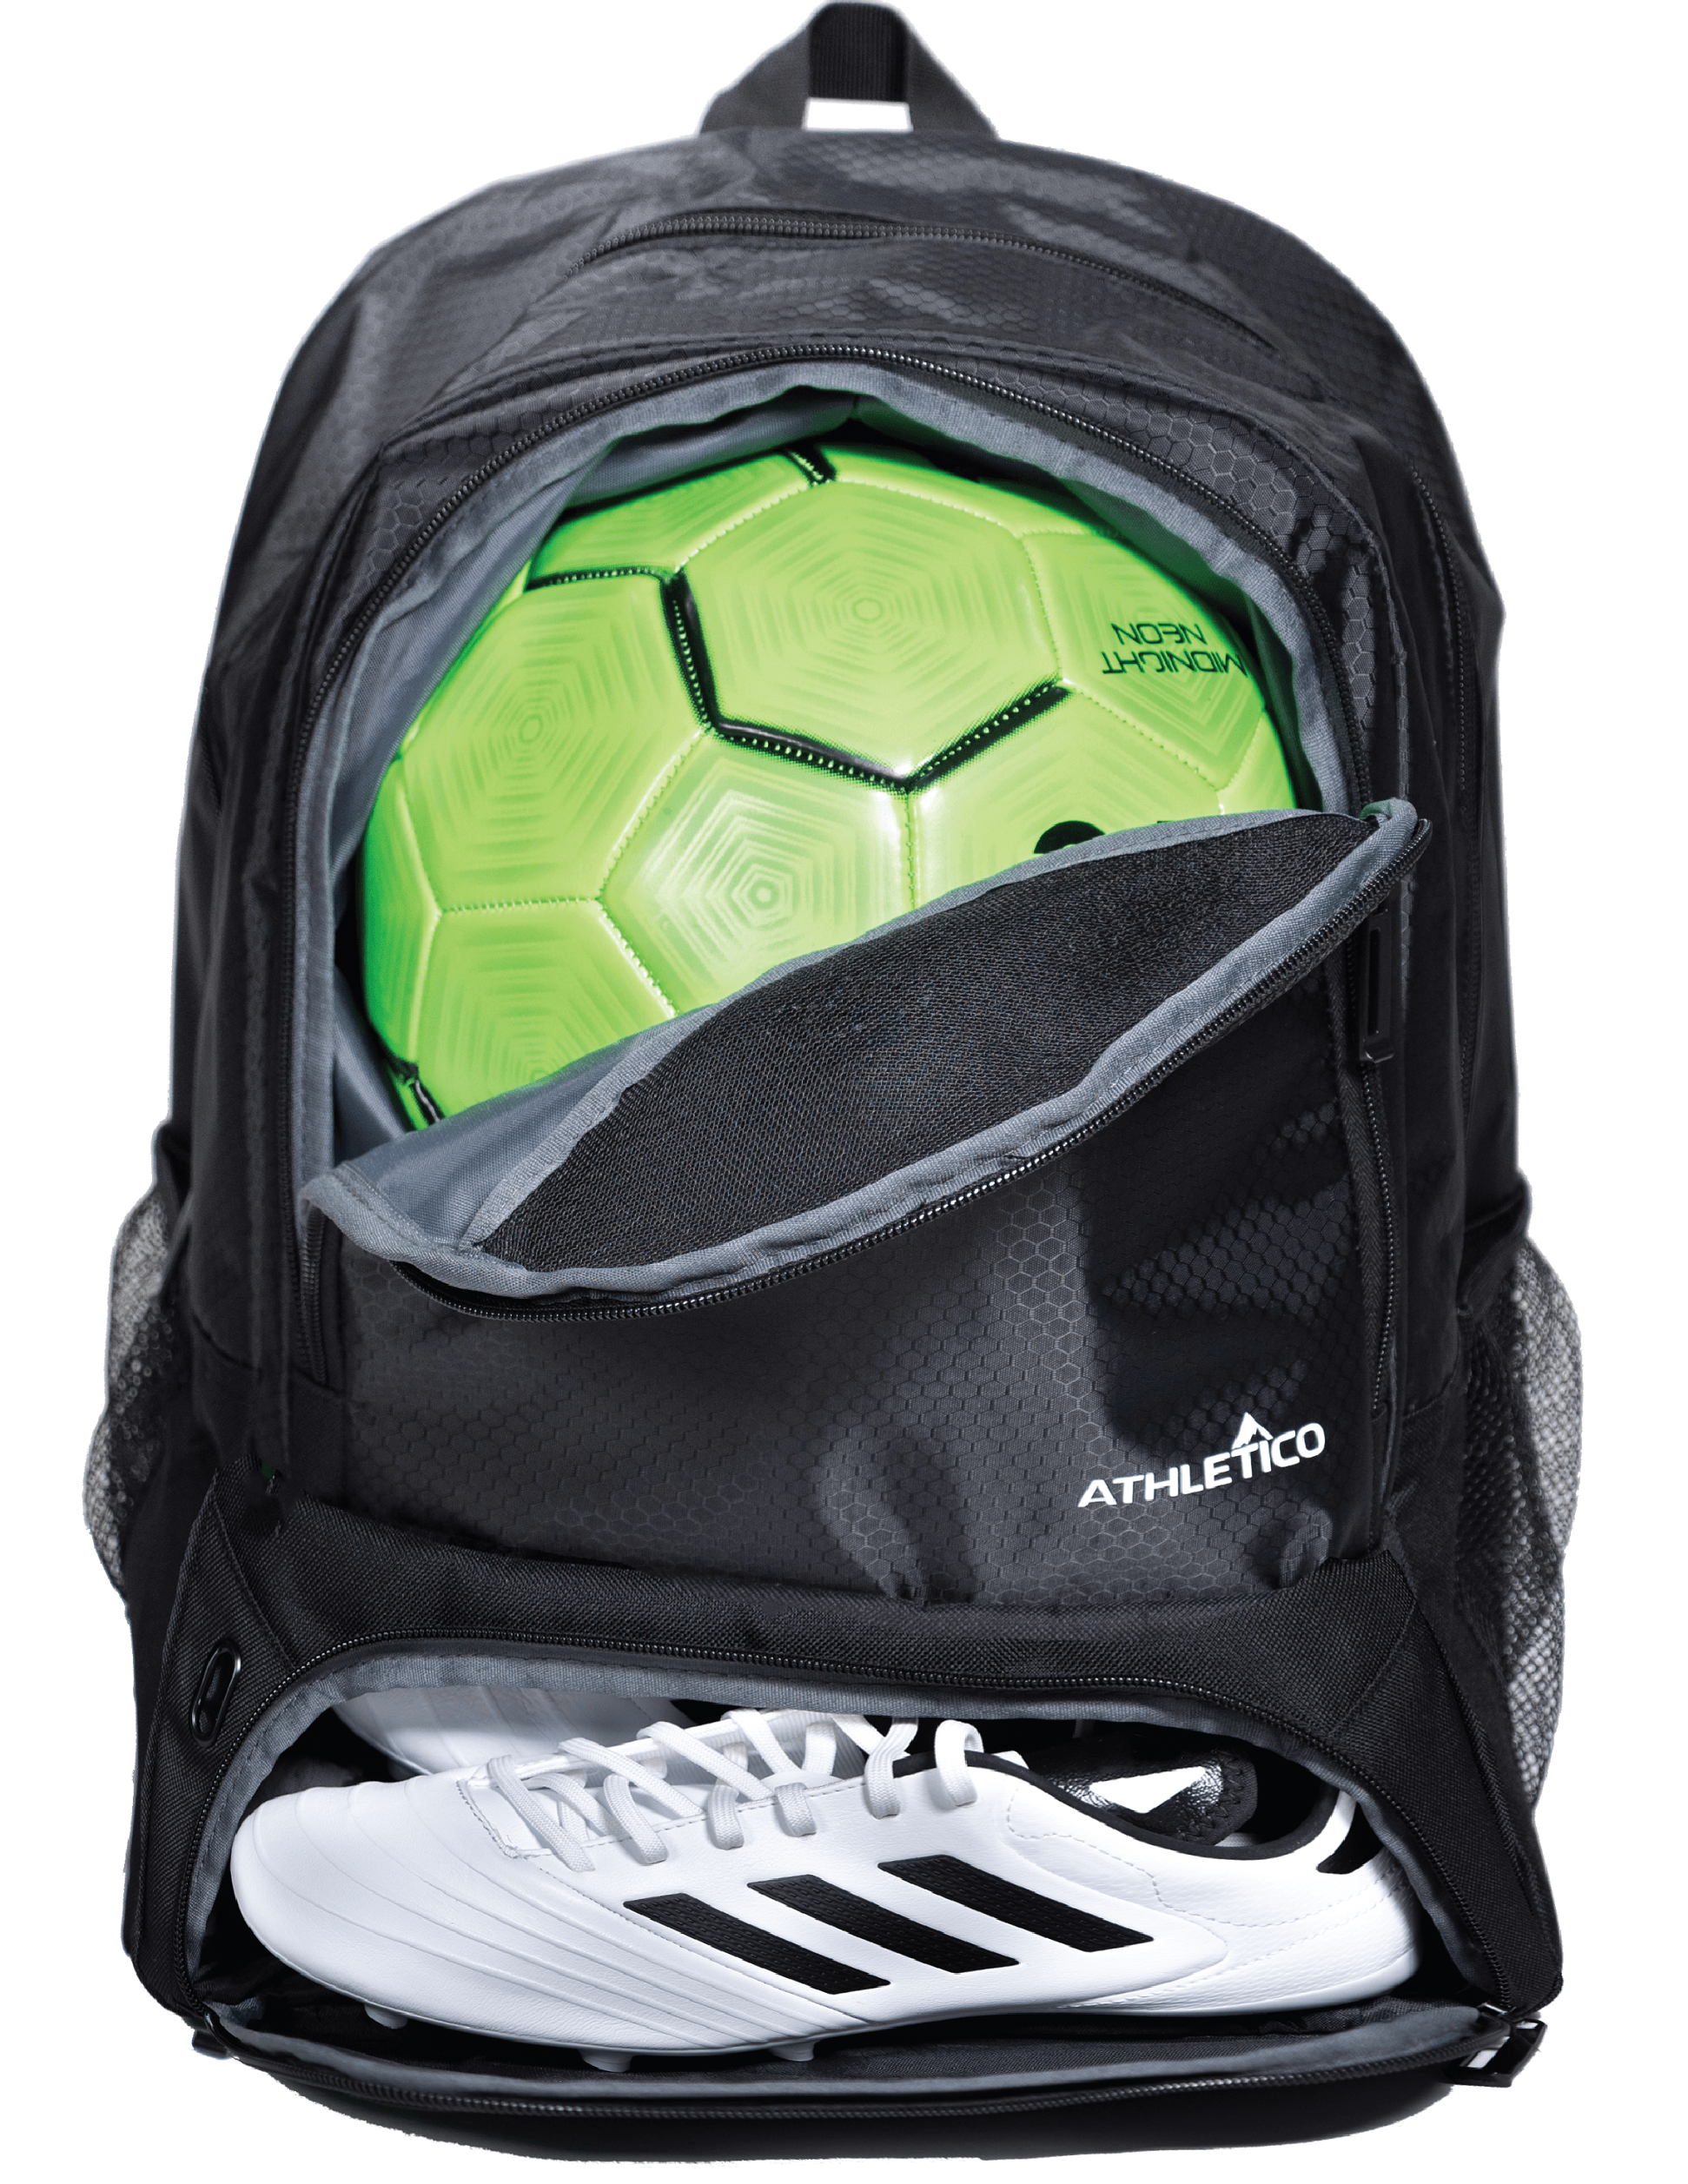 Athletico League Youth Soccer Bag - Athletico